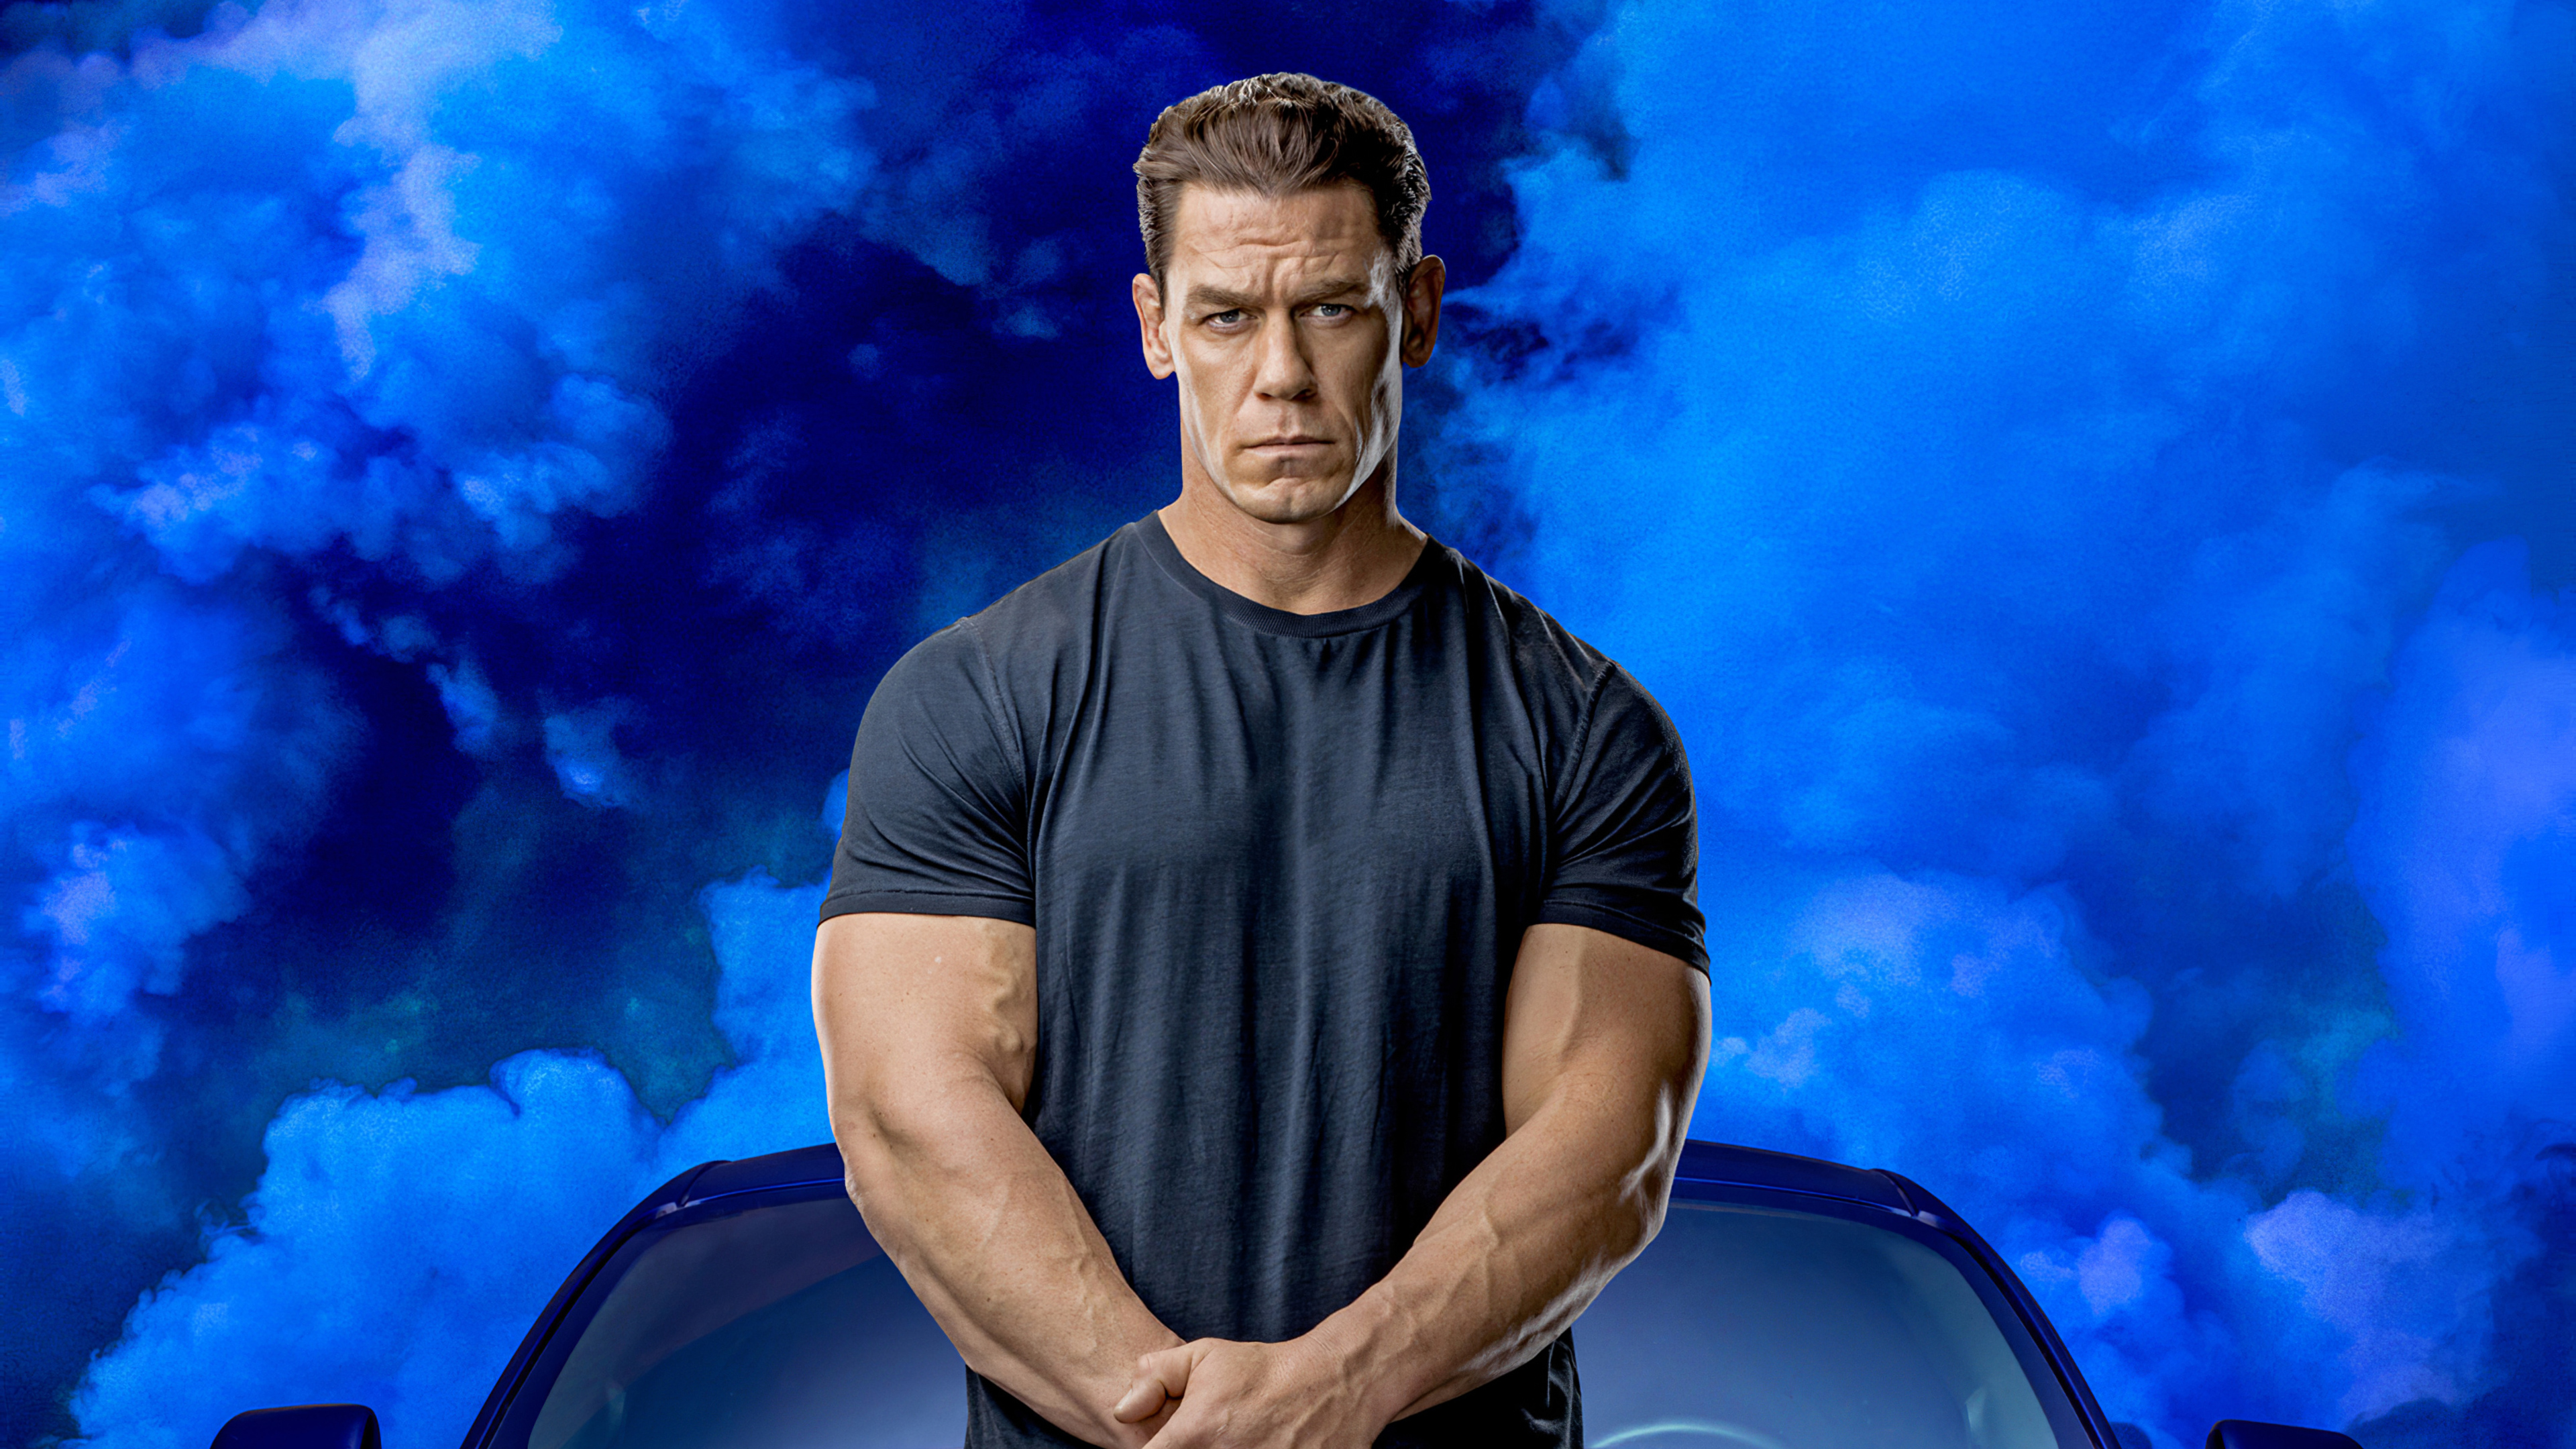 john-cena-in-fast-and-furious-9-2020-movie-hb.jpg